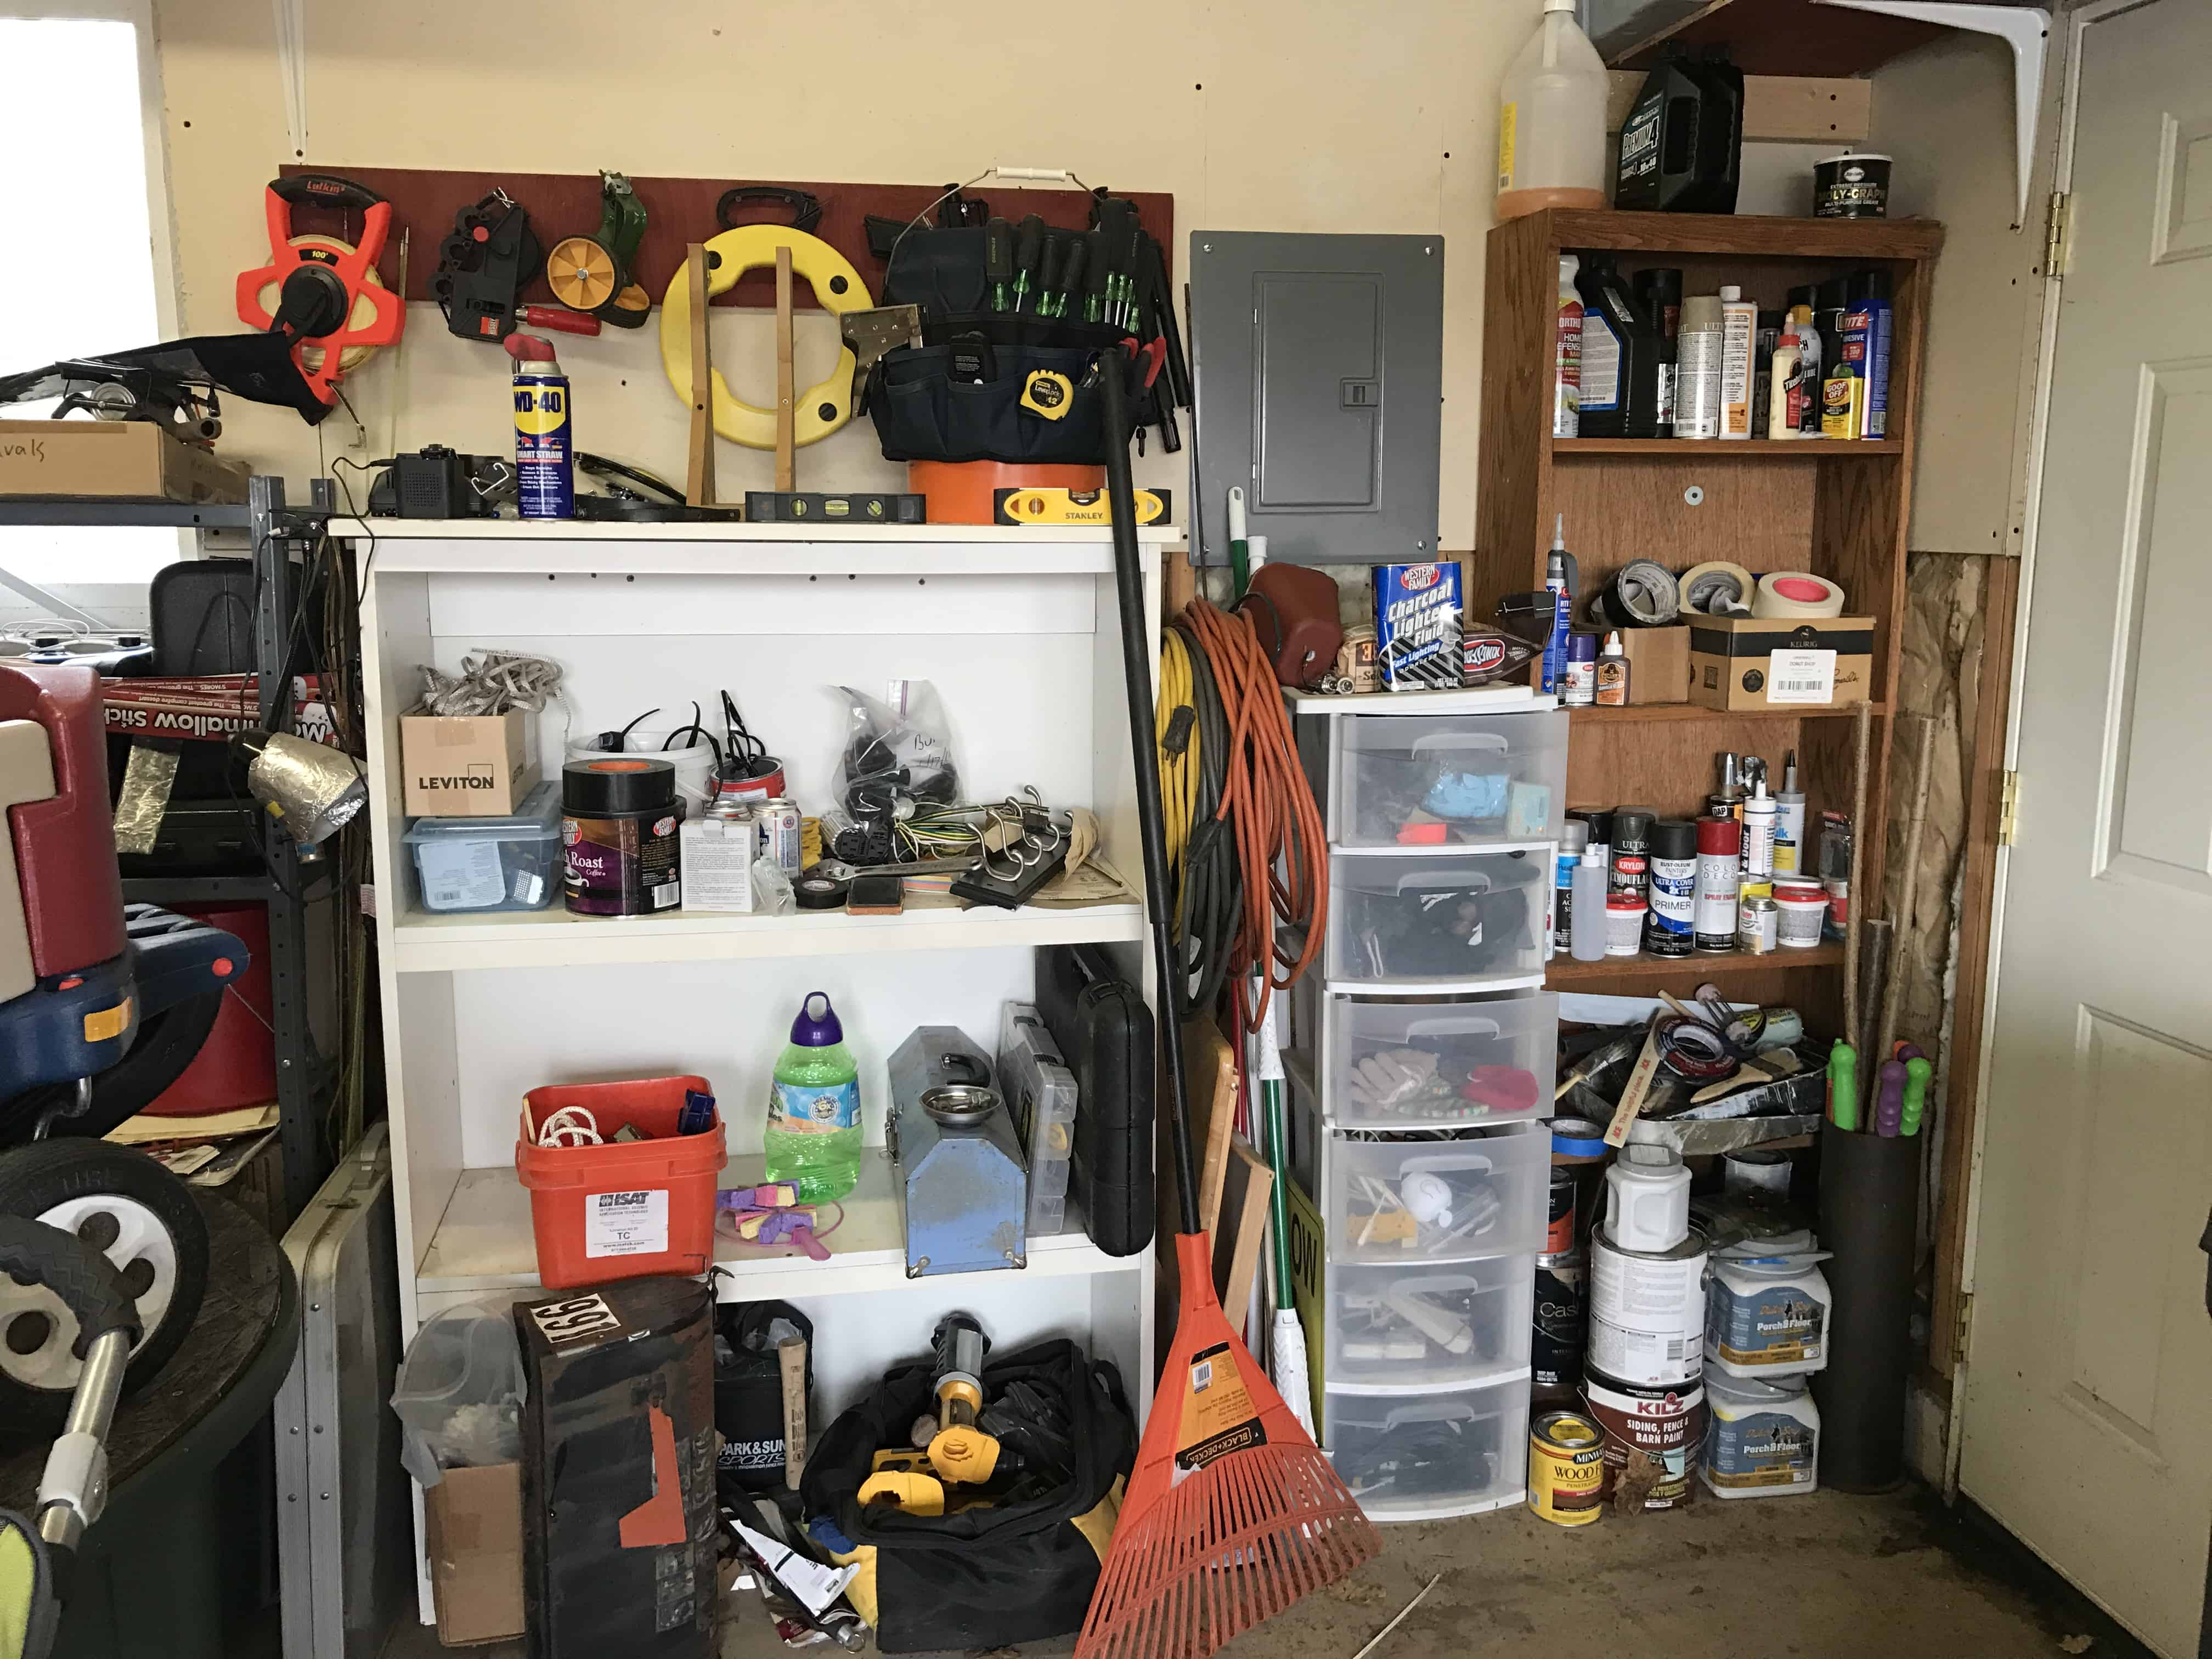 Old kitchen cabinets garage - I Also Have Seen Old Kitchen Cabinets Repurposed As Garage Storage If Having Matching Shelves And Cabinets Isn T Worth The Expense Of Purchasing New